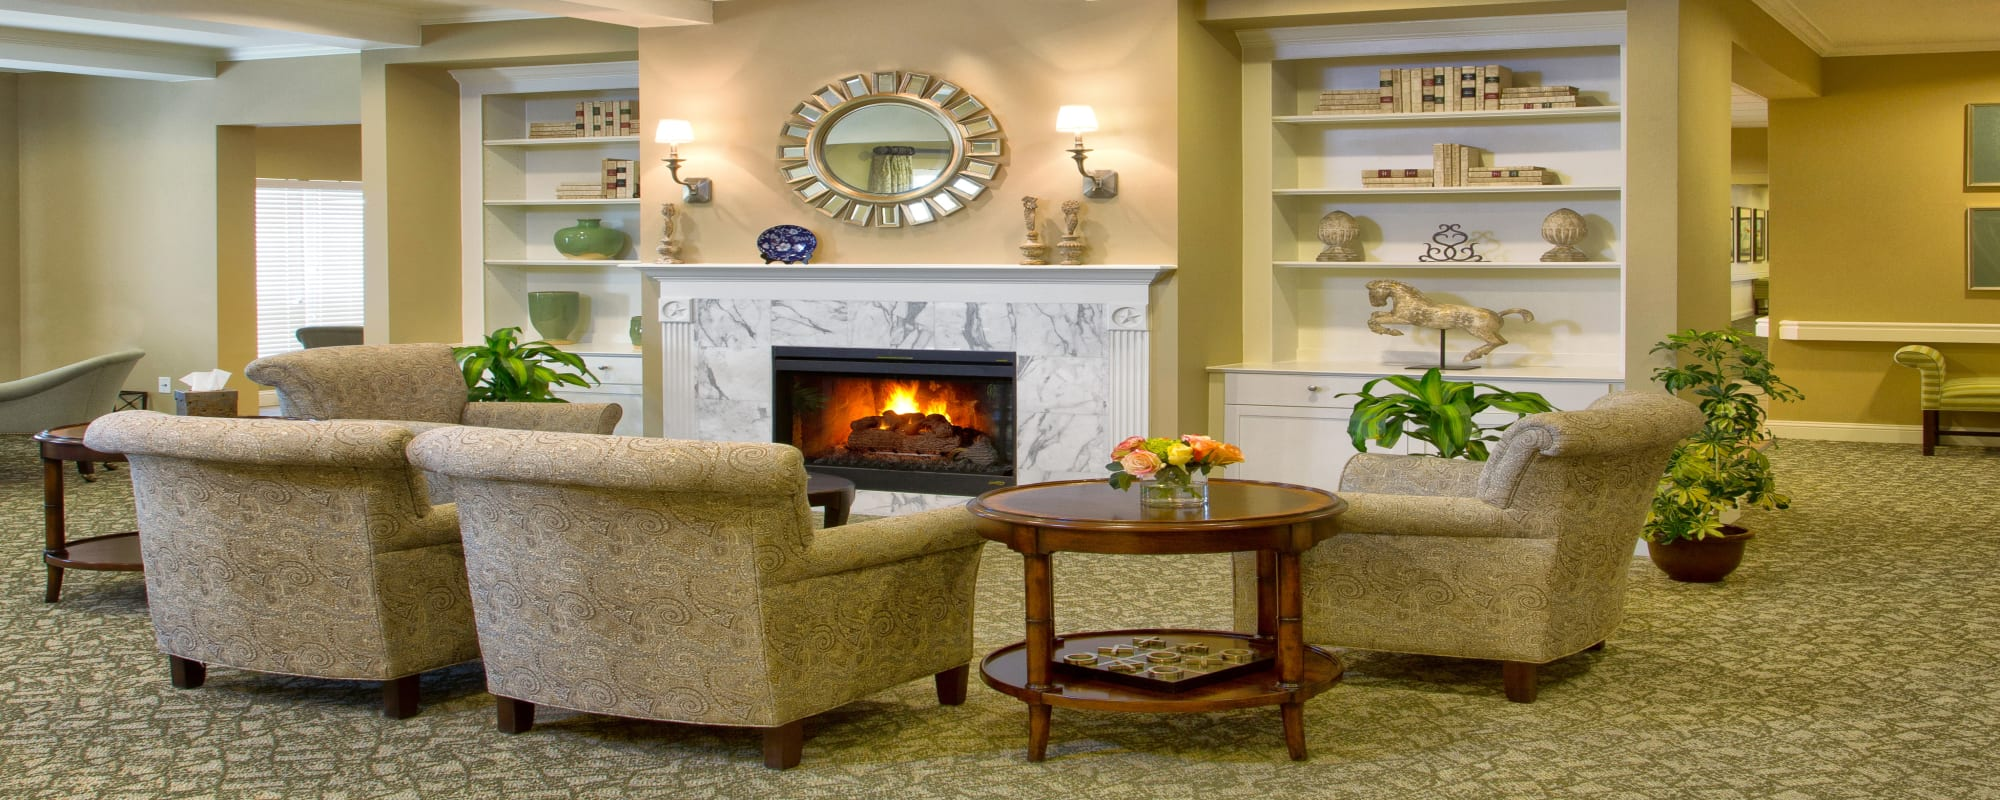 Senior Living in Katy, TX - Carriage Inn Katy